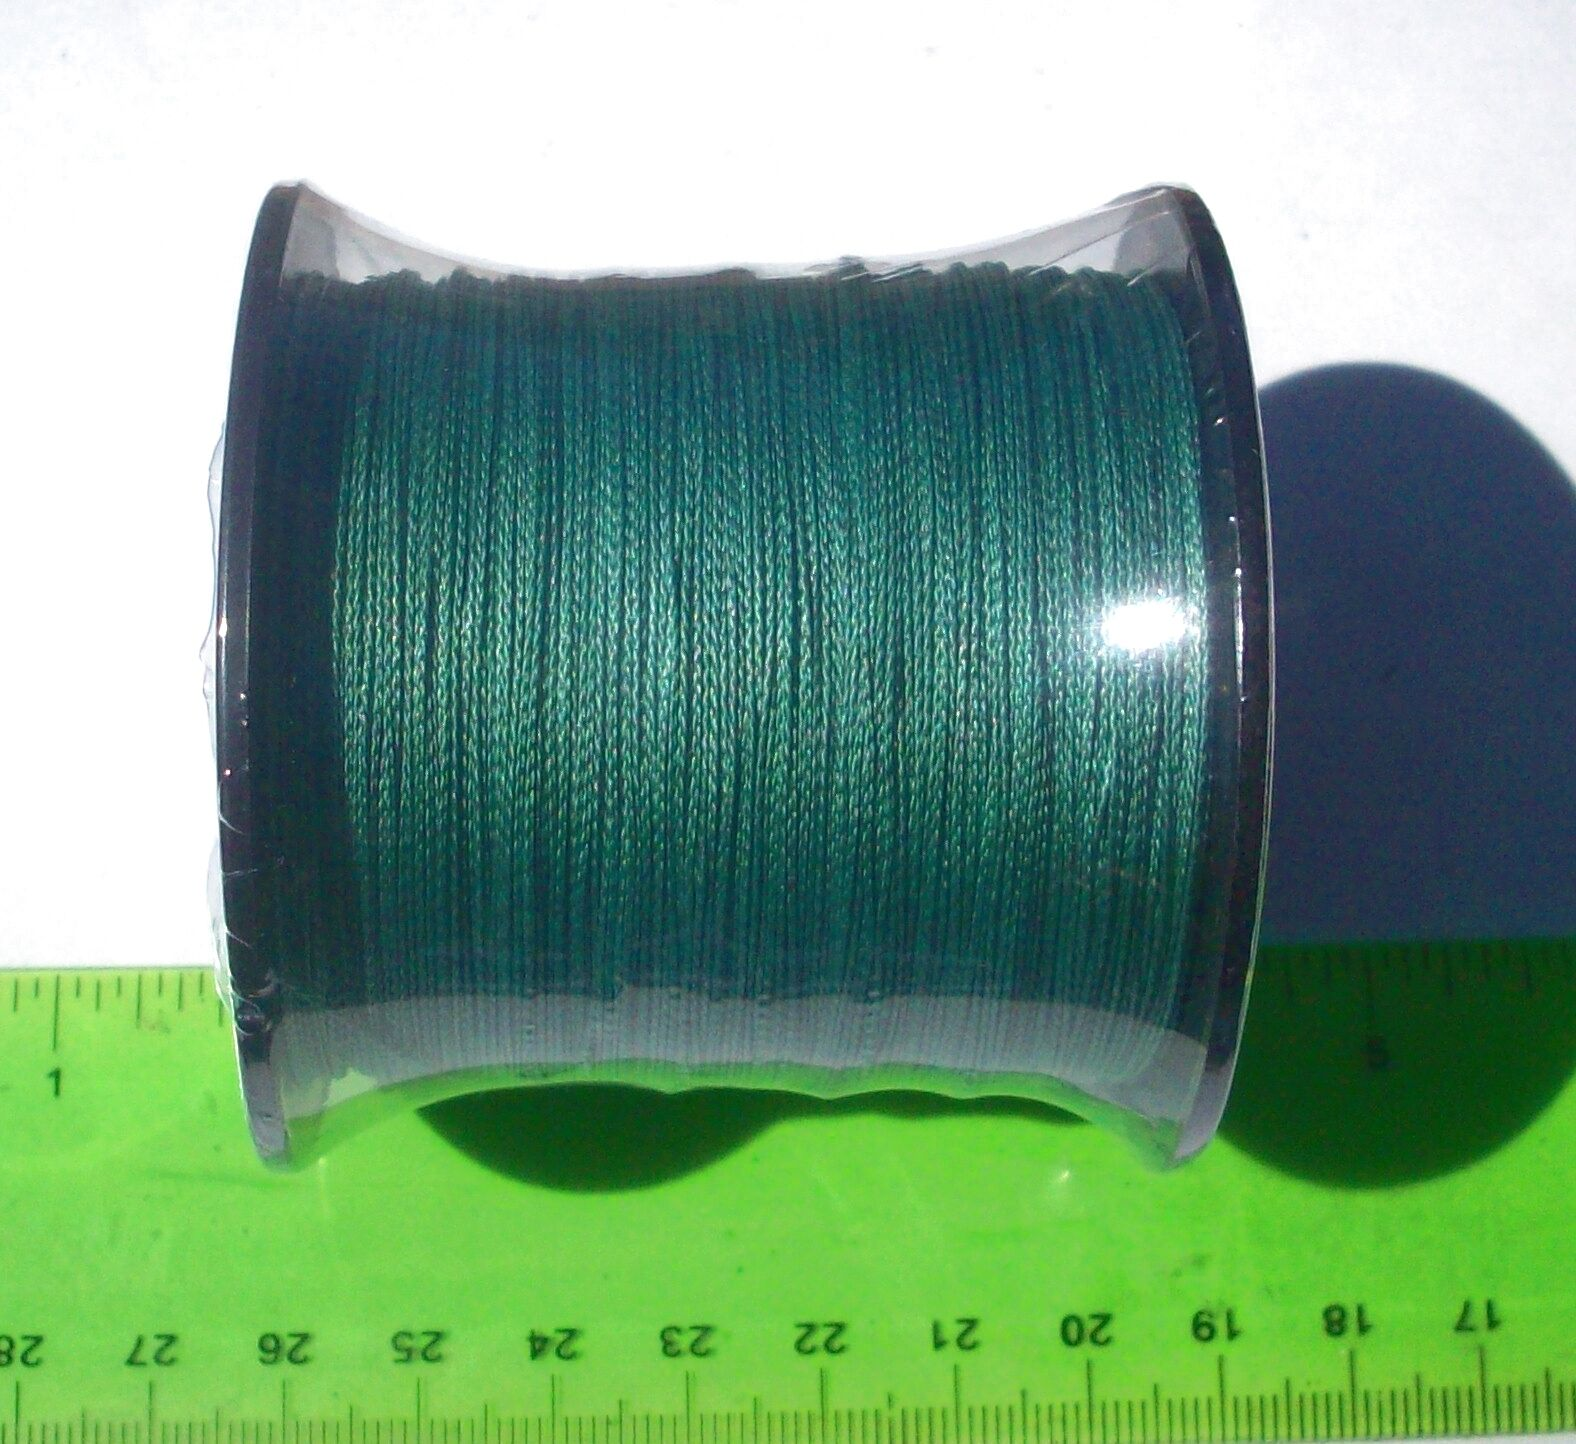 550yds (500m) GREEN SUPERLINE BRAID 40lb test Braided Fishing Line Bass Big Game